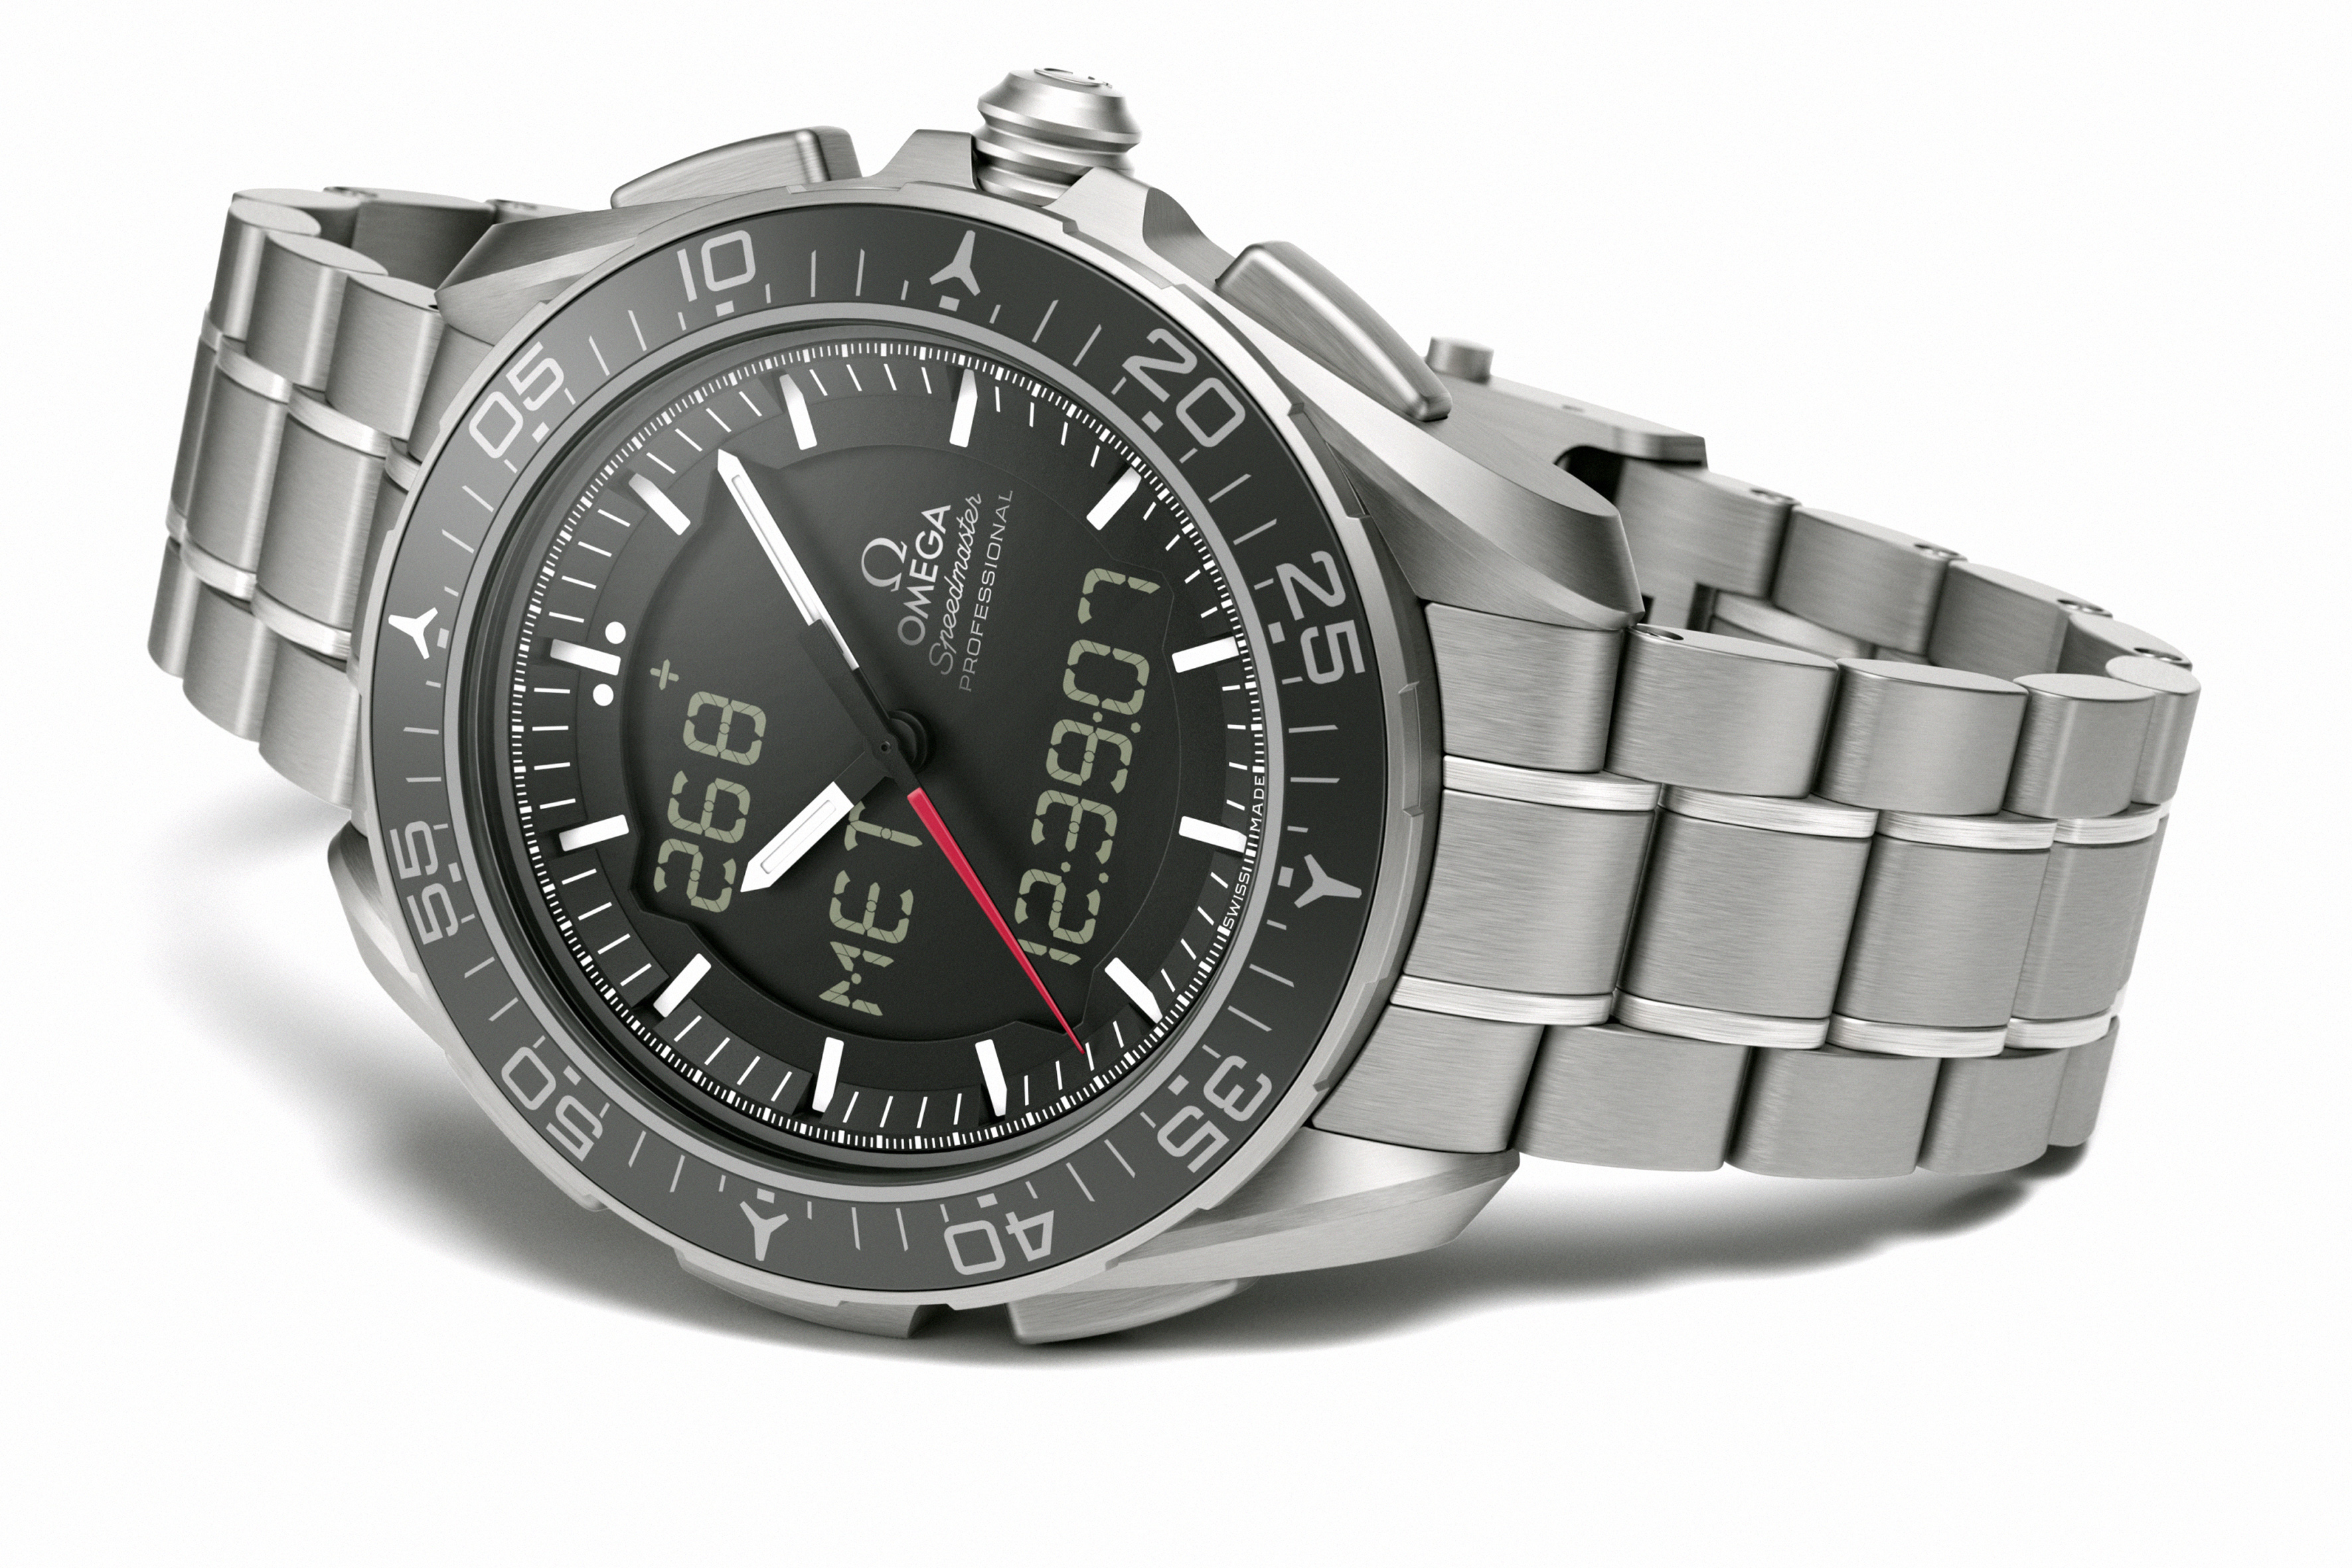 A watch for astronauts by esa and omega for Astronaut watches